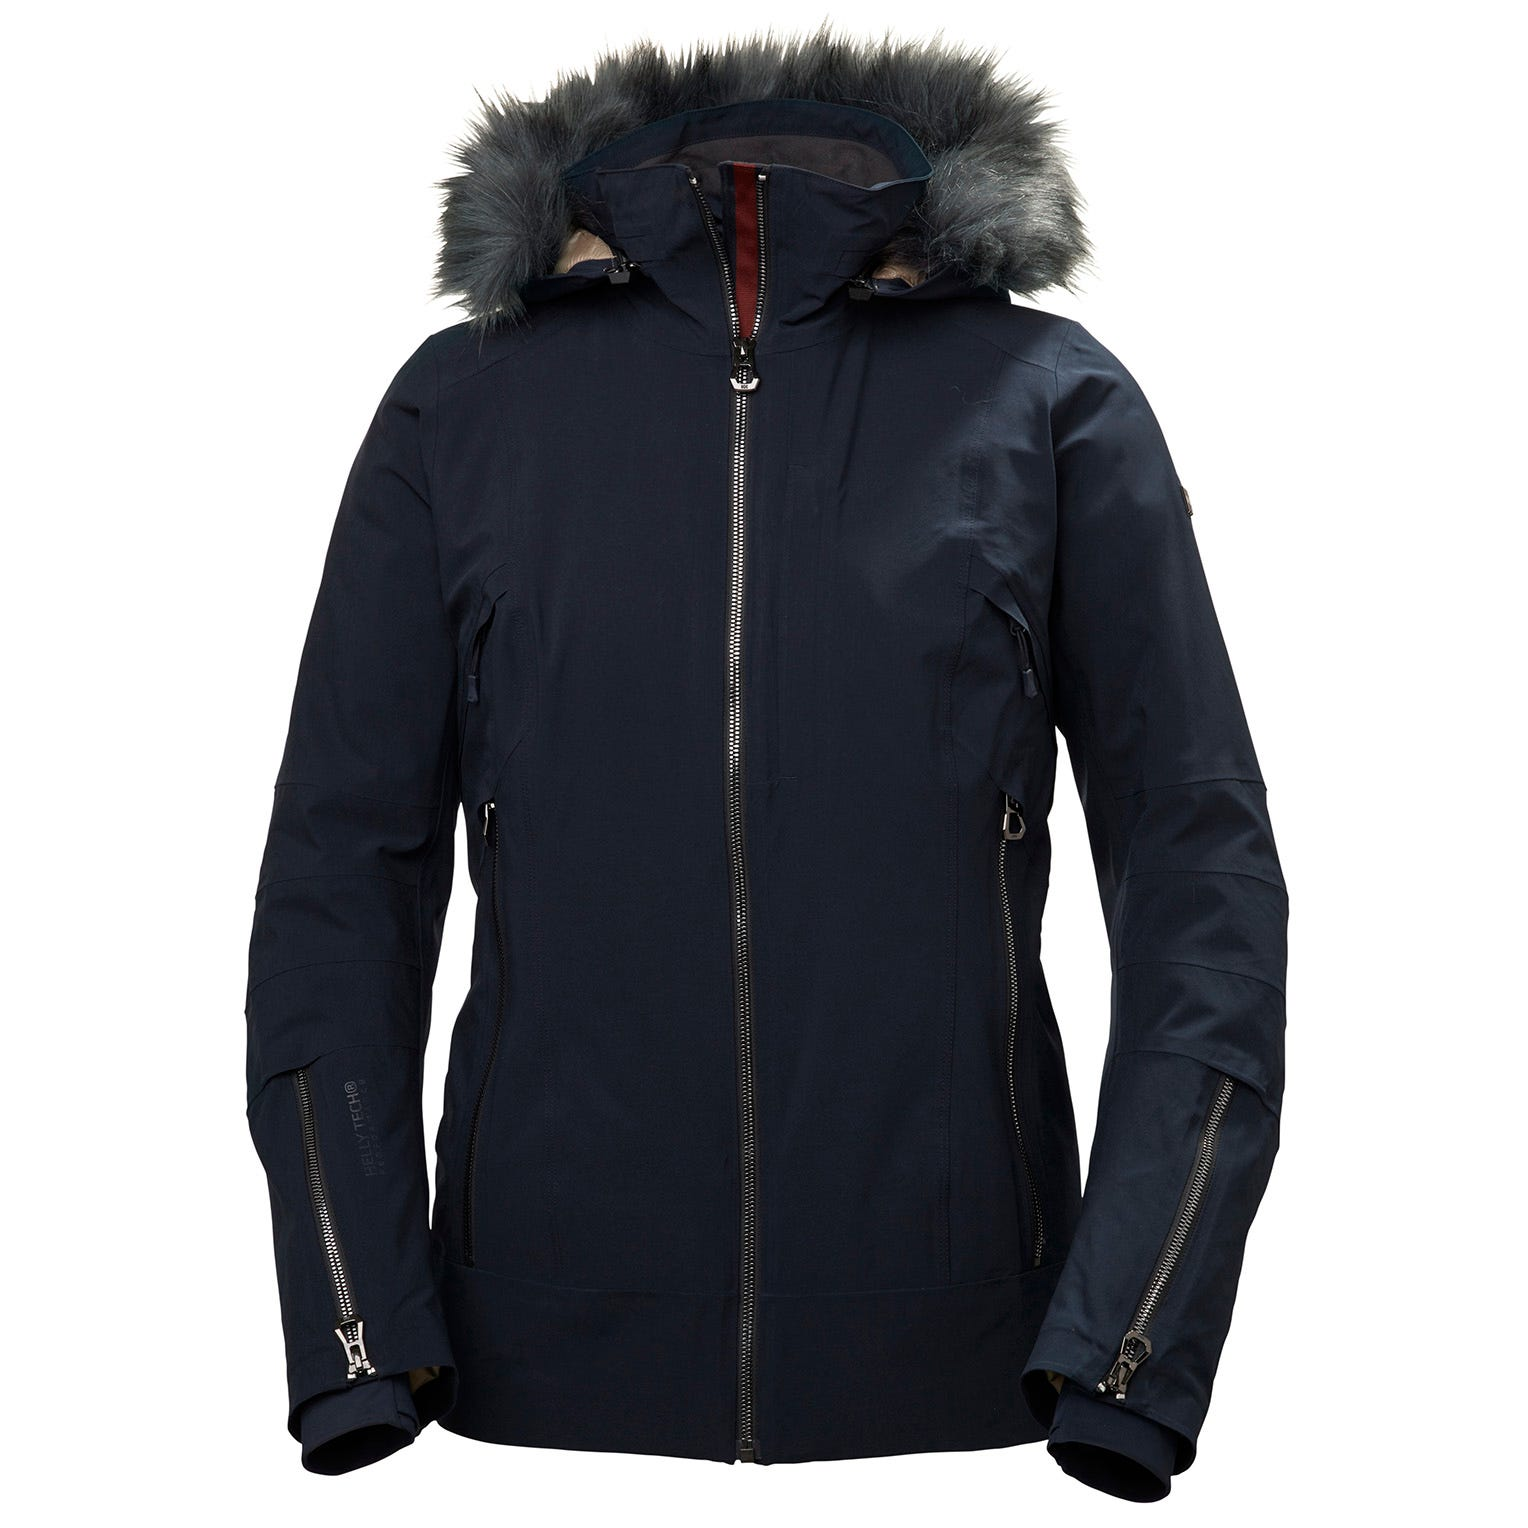 Womens Snowdancer Ski Jacket With Faux Fur Hood | Helly Hansen Womens Navy XL